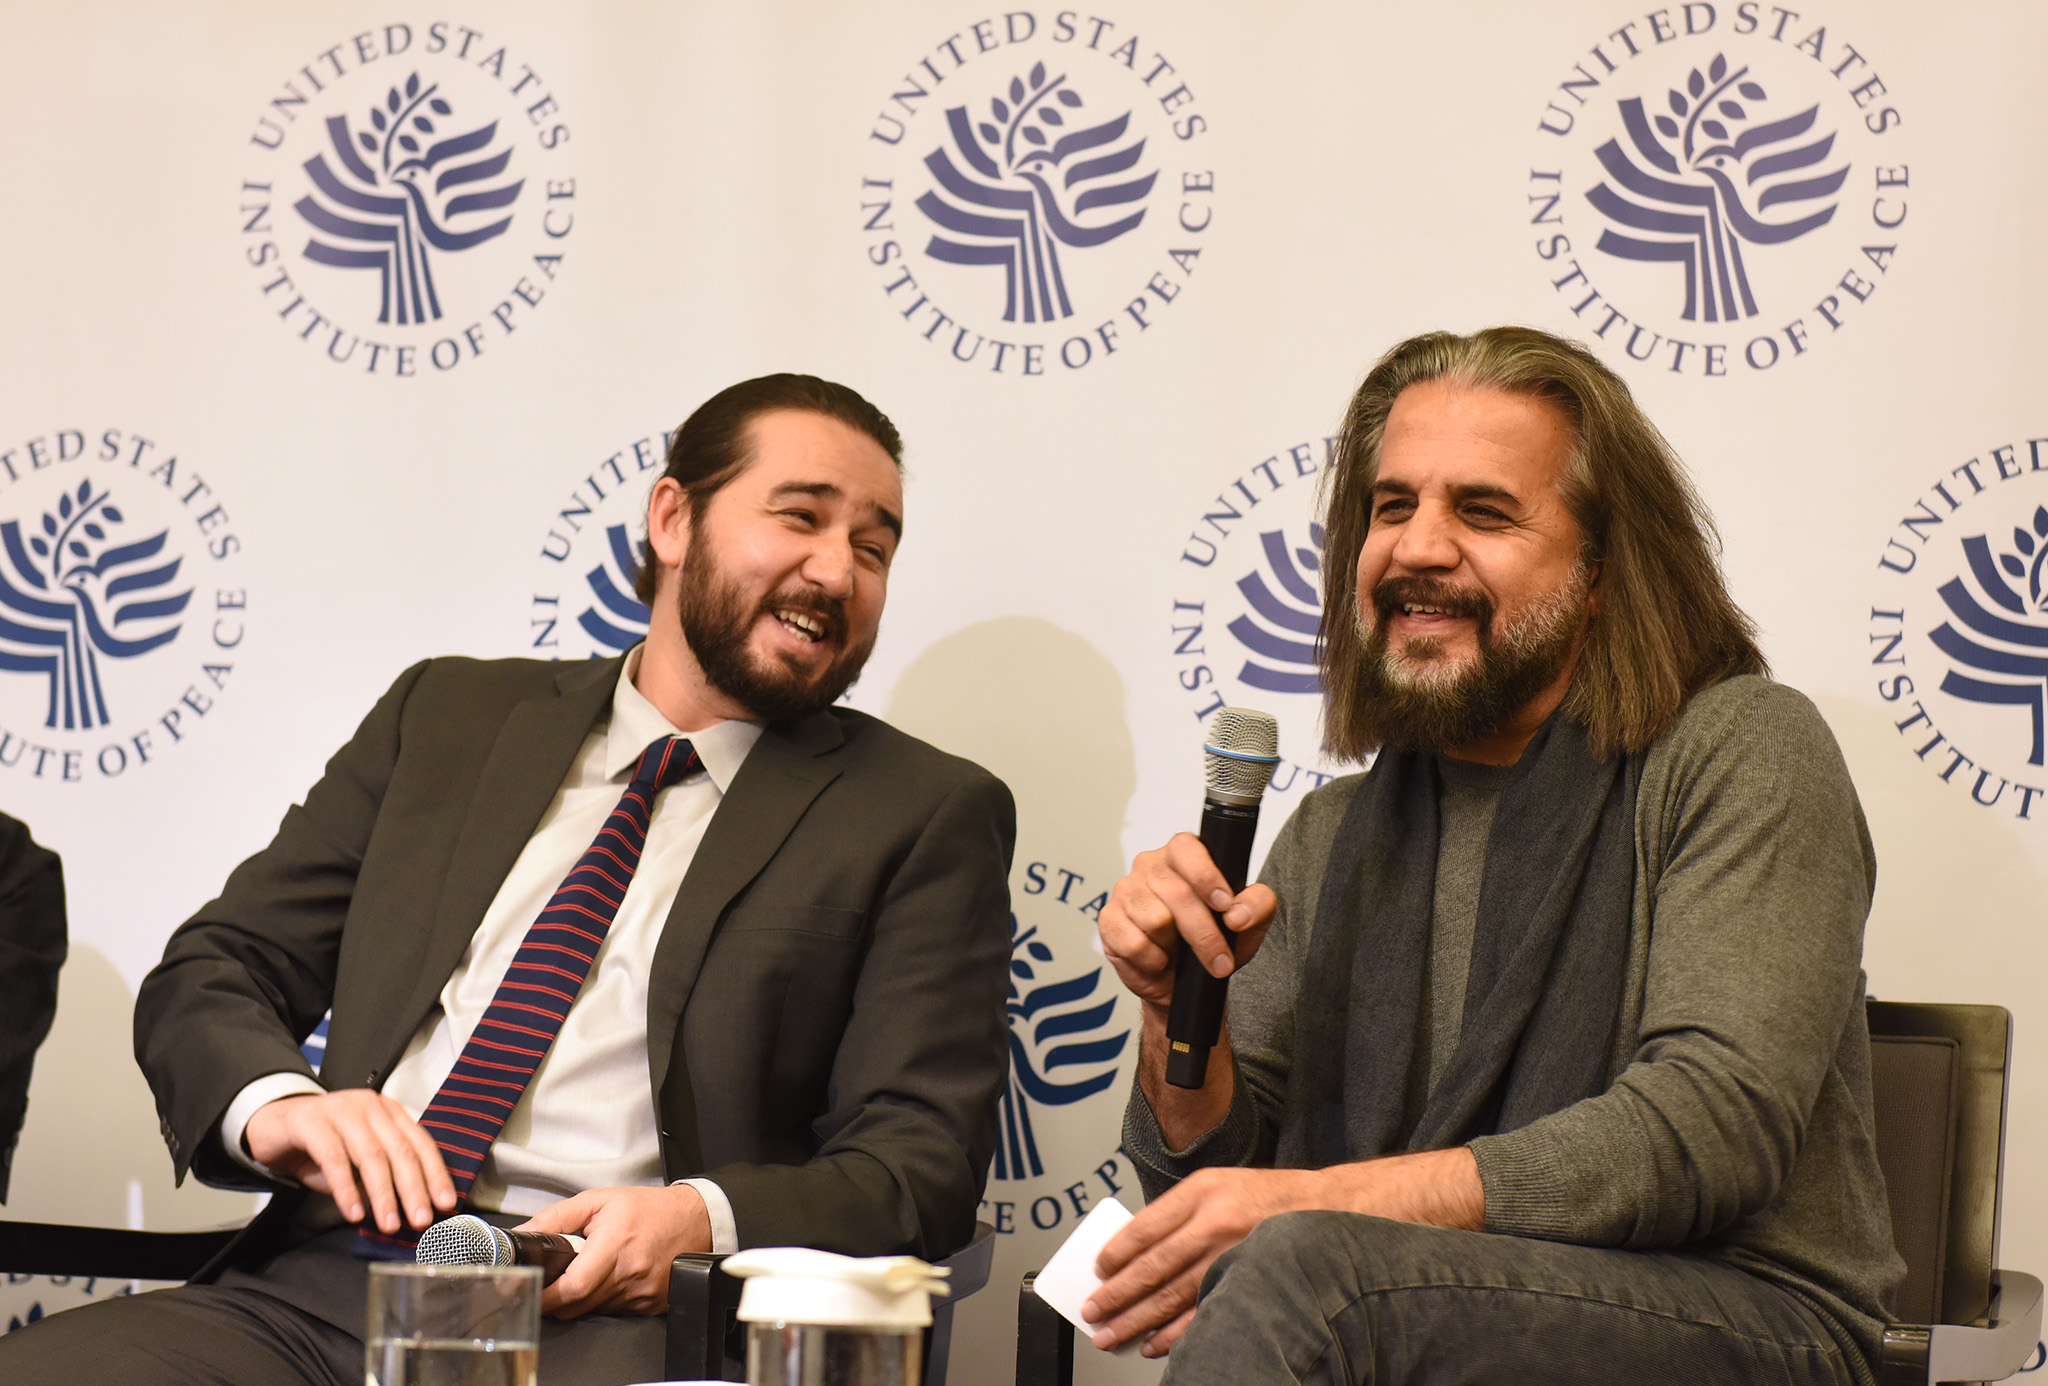 ArtLords cofounders Omaid Sharifi and Kabir Mokamel share their vision for ArtLords and Afghanistan at USIP, January 28, 2020.